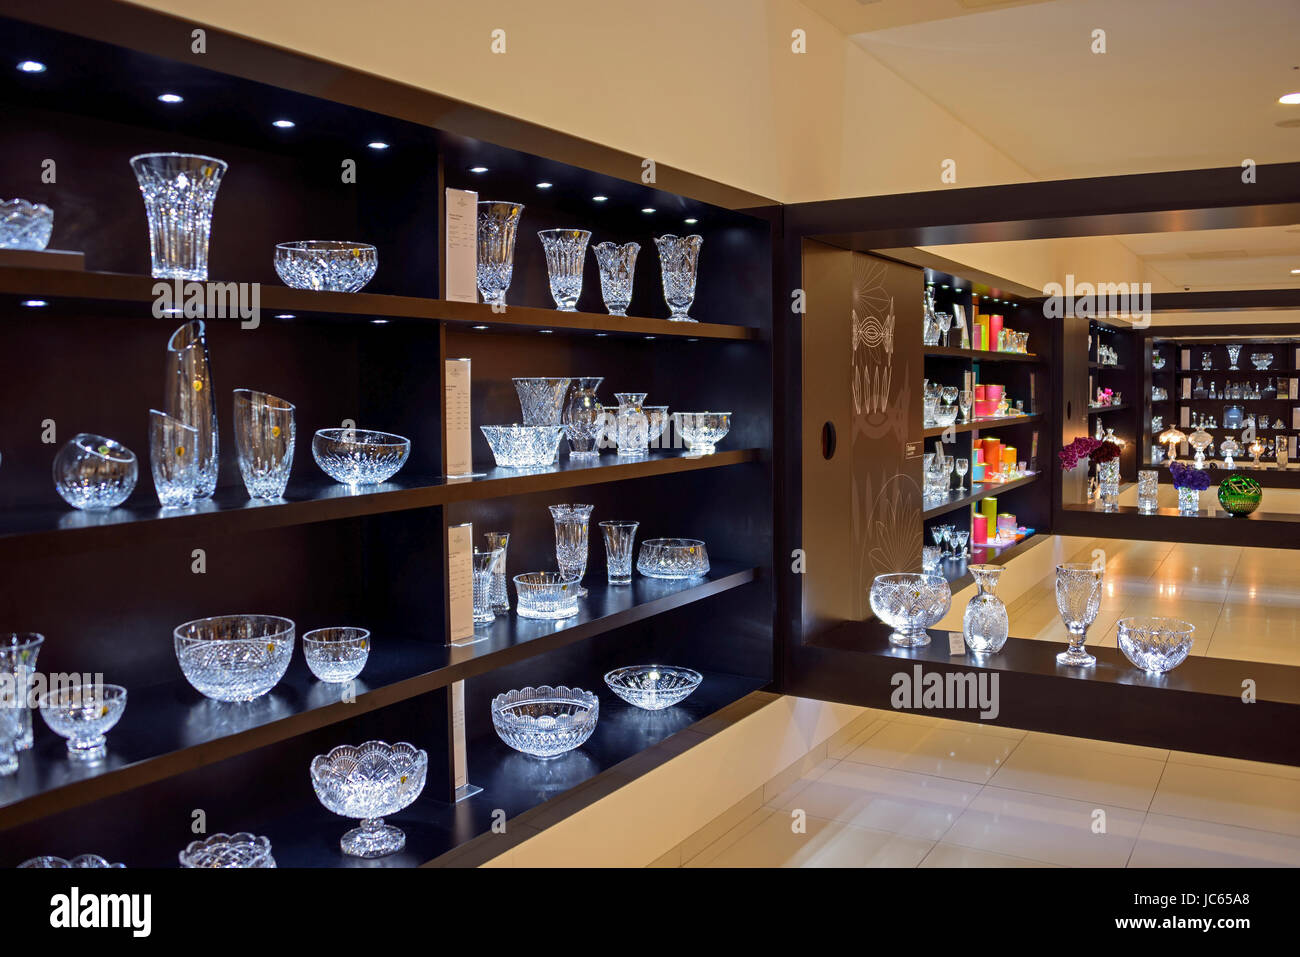 Crystal, house of the Waterford of crystal, Waterford, Ireland, Great Britain , Kristall, Haus des Waterford Kristalls - Stock Image